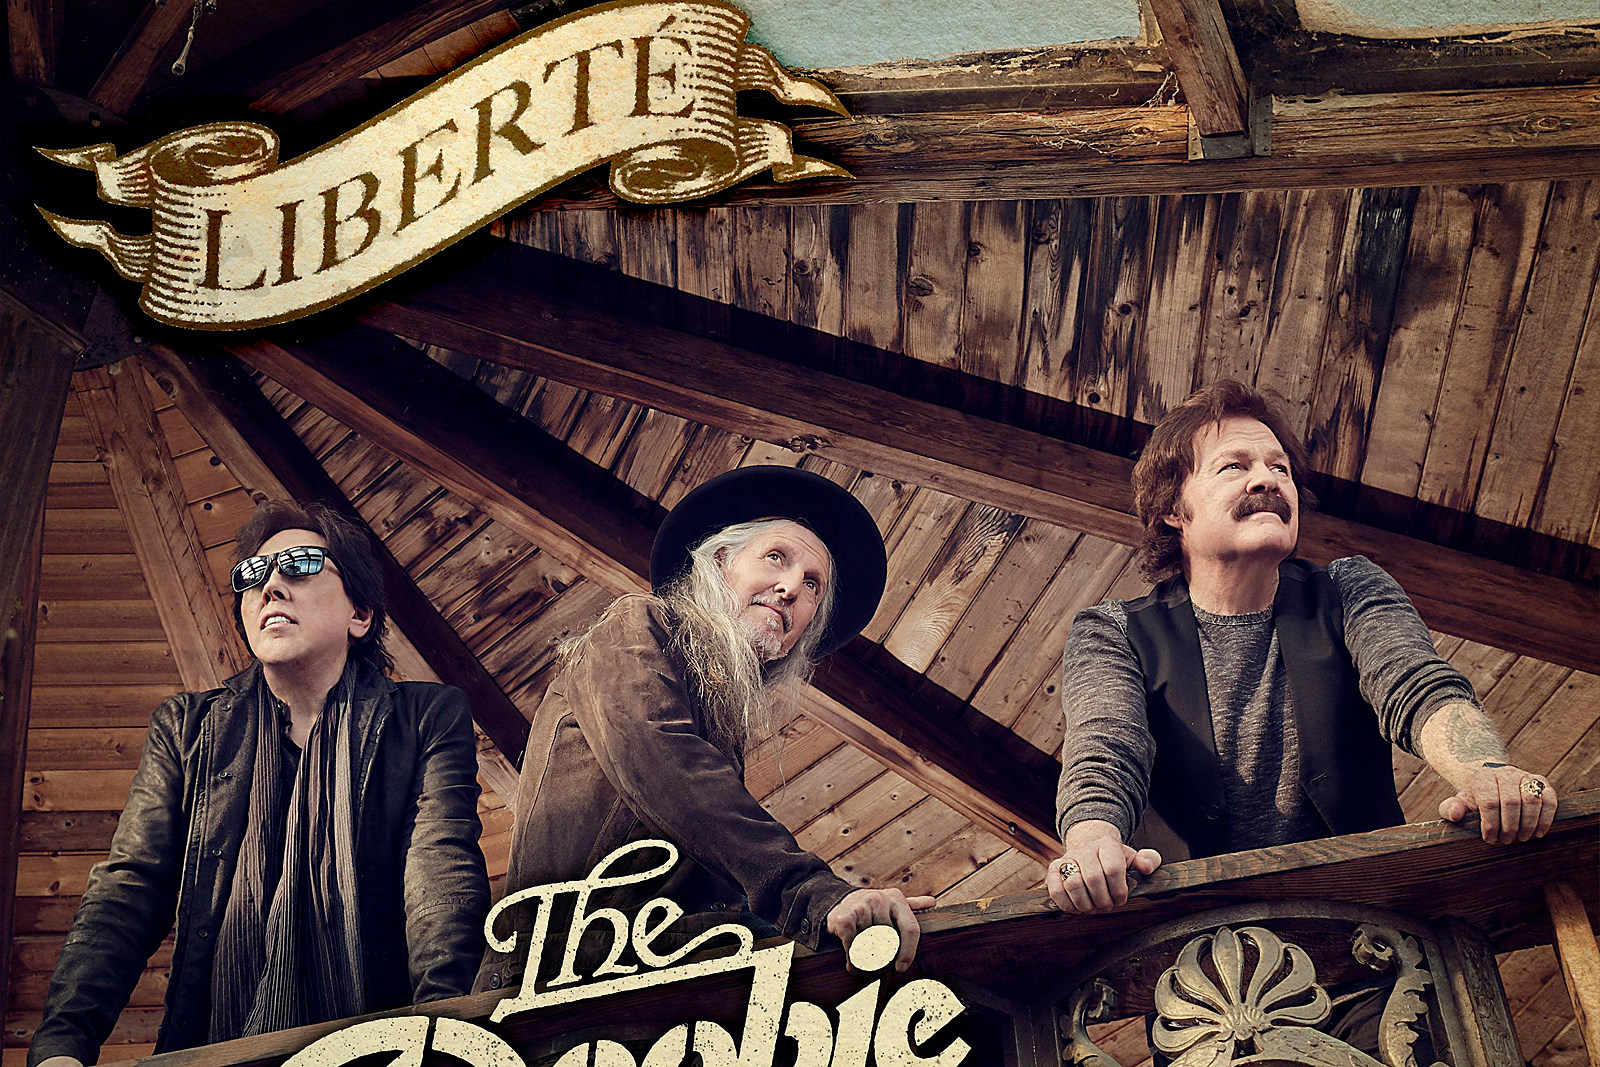 Hear the First Song From the Doobie Brothers' New Album 'Liberte'